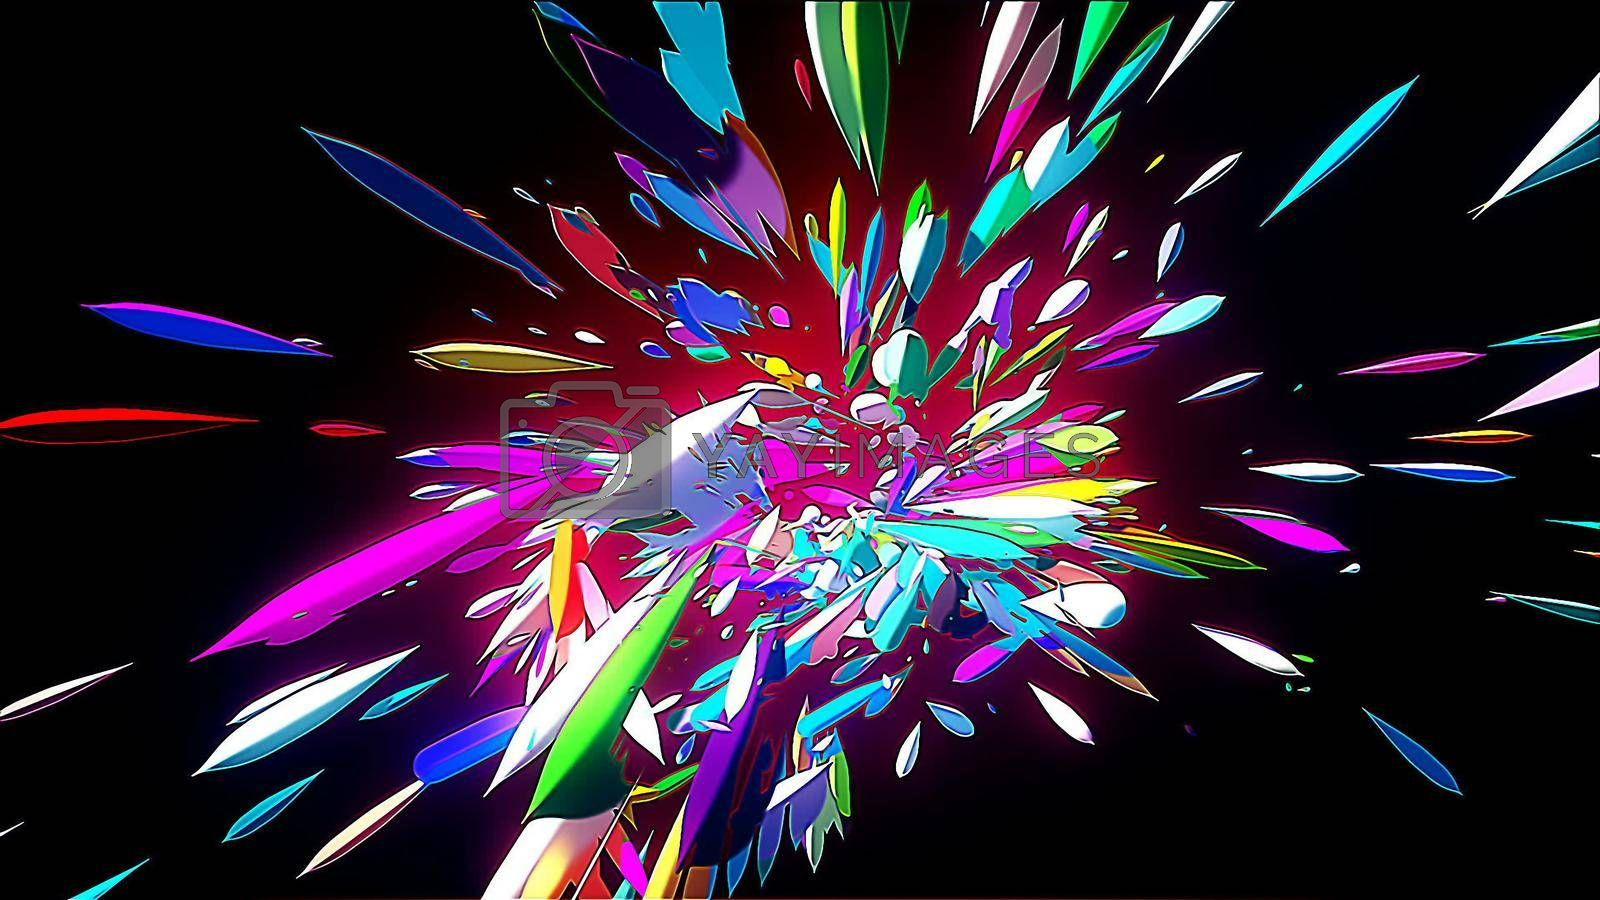 HD Abstract CGI motion graphics with multicolored lines